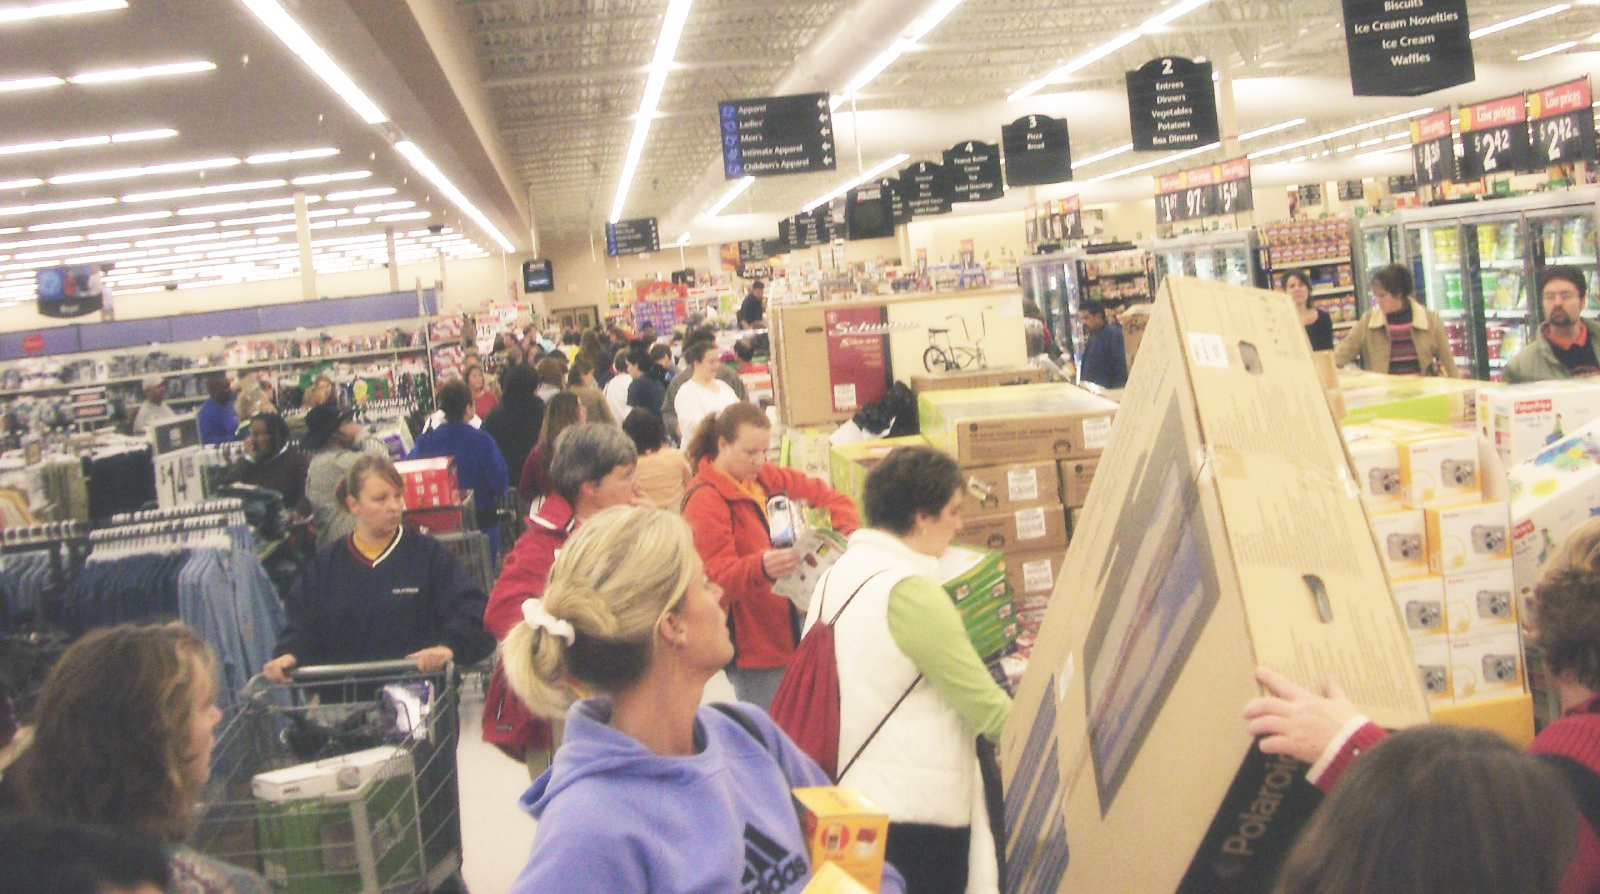 CONFIRMED: Walmart's Black Friday sale will start on Thanksgiving